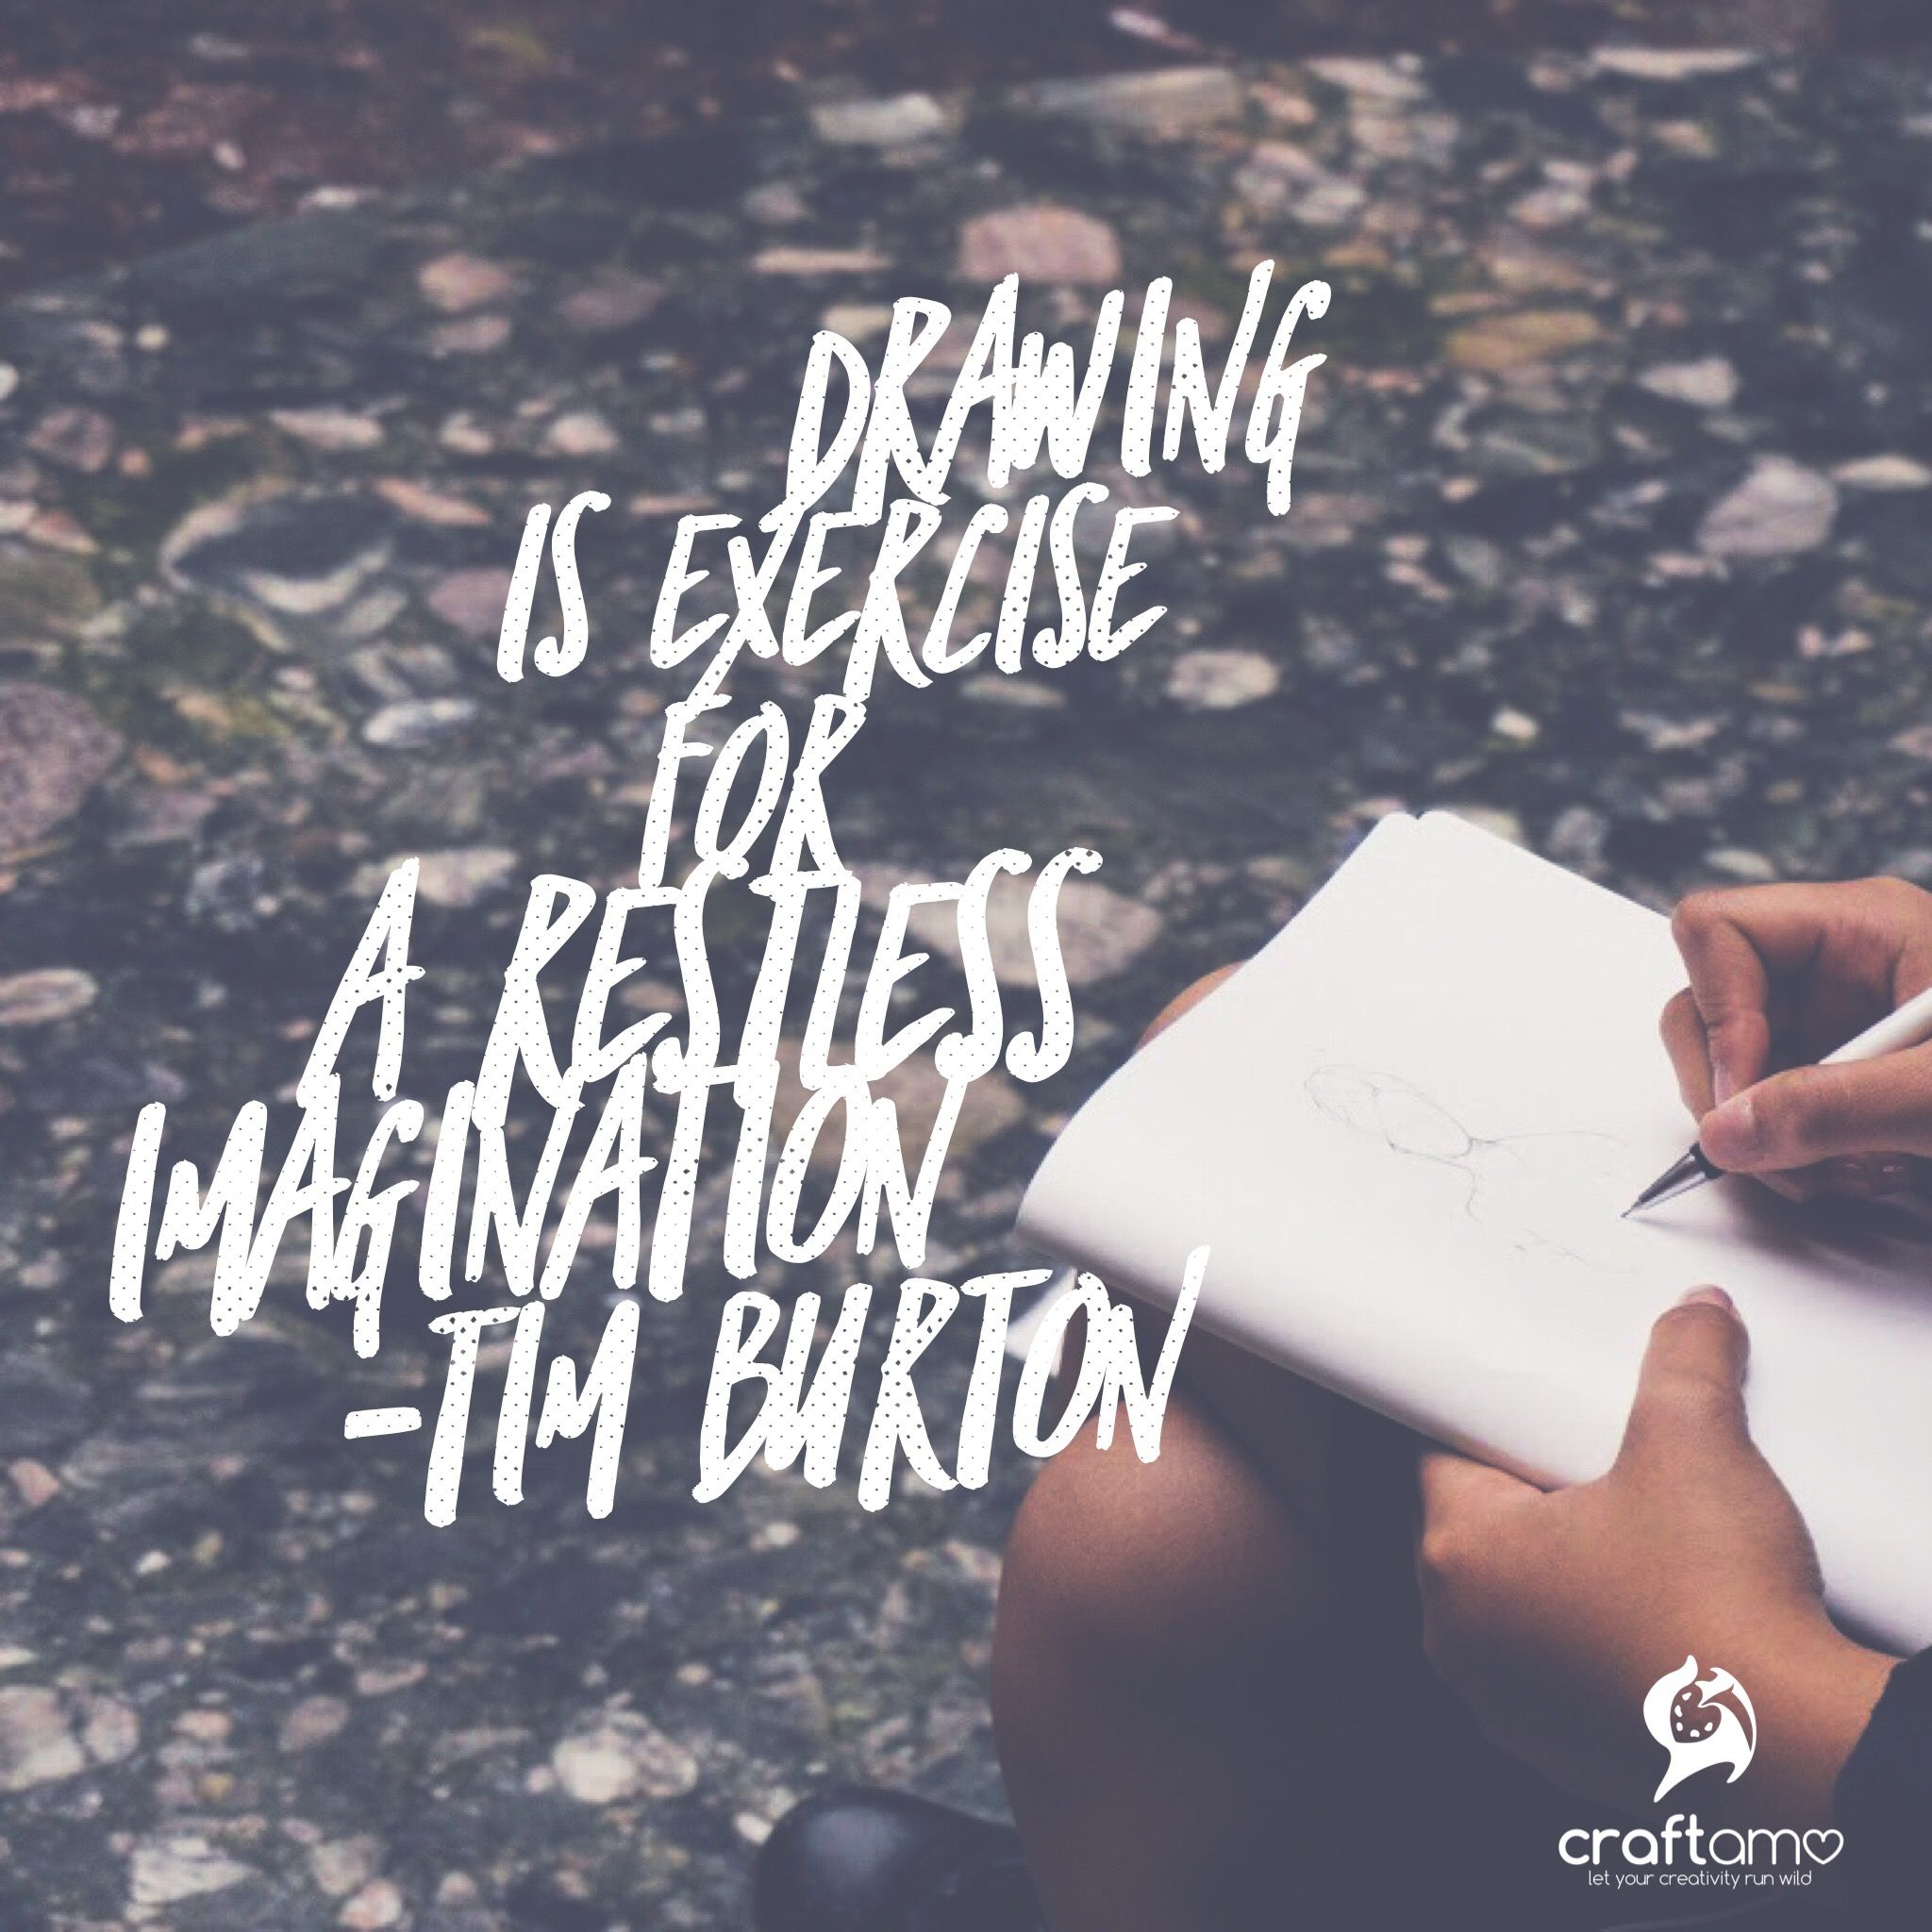 Drawing is exercise for a restless imagination - Tim Burton #ArtQuotes #TuesdayThoughts #QuoteOfTheDay #TimBurton #Craftamo